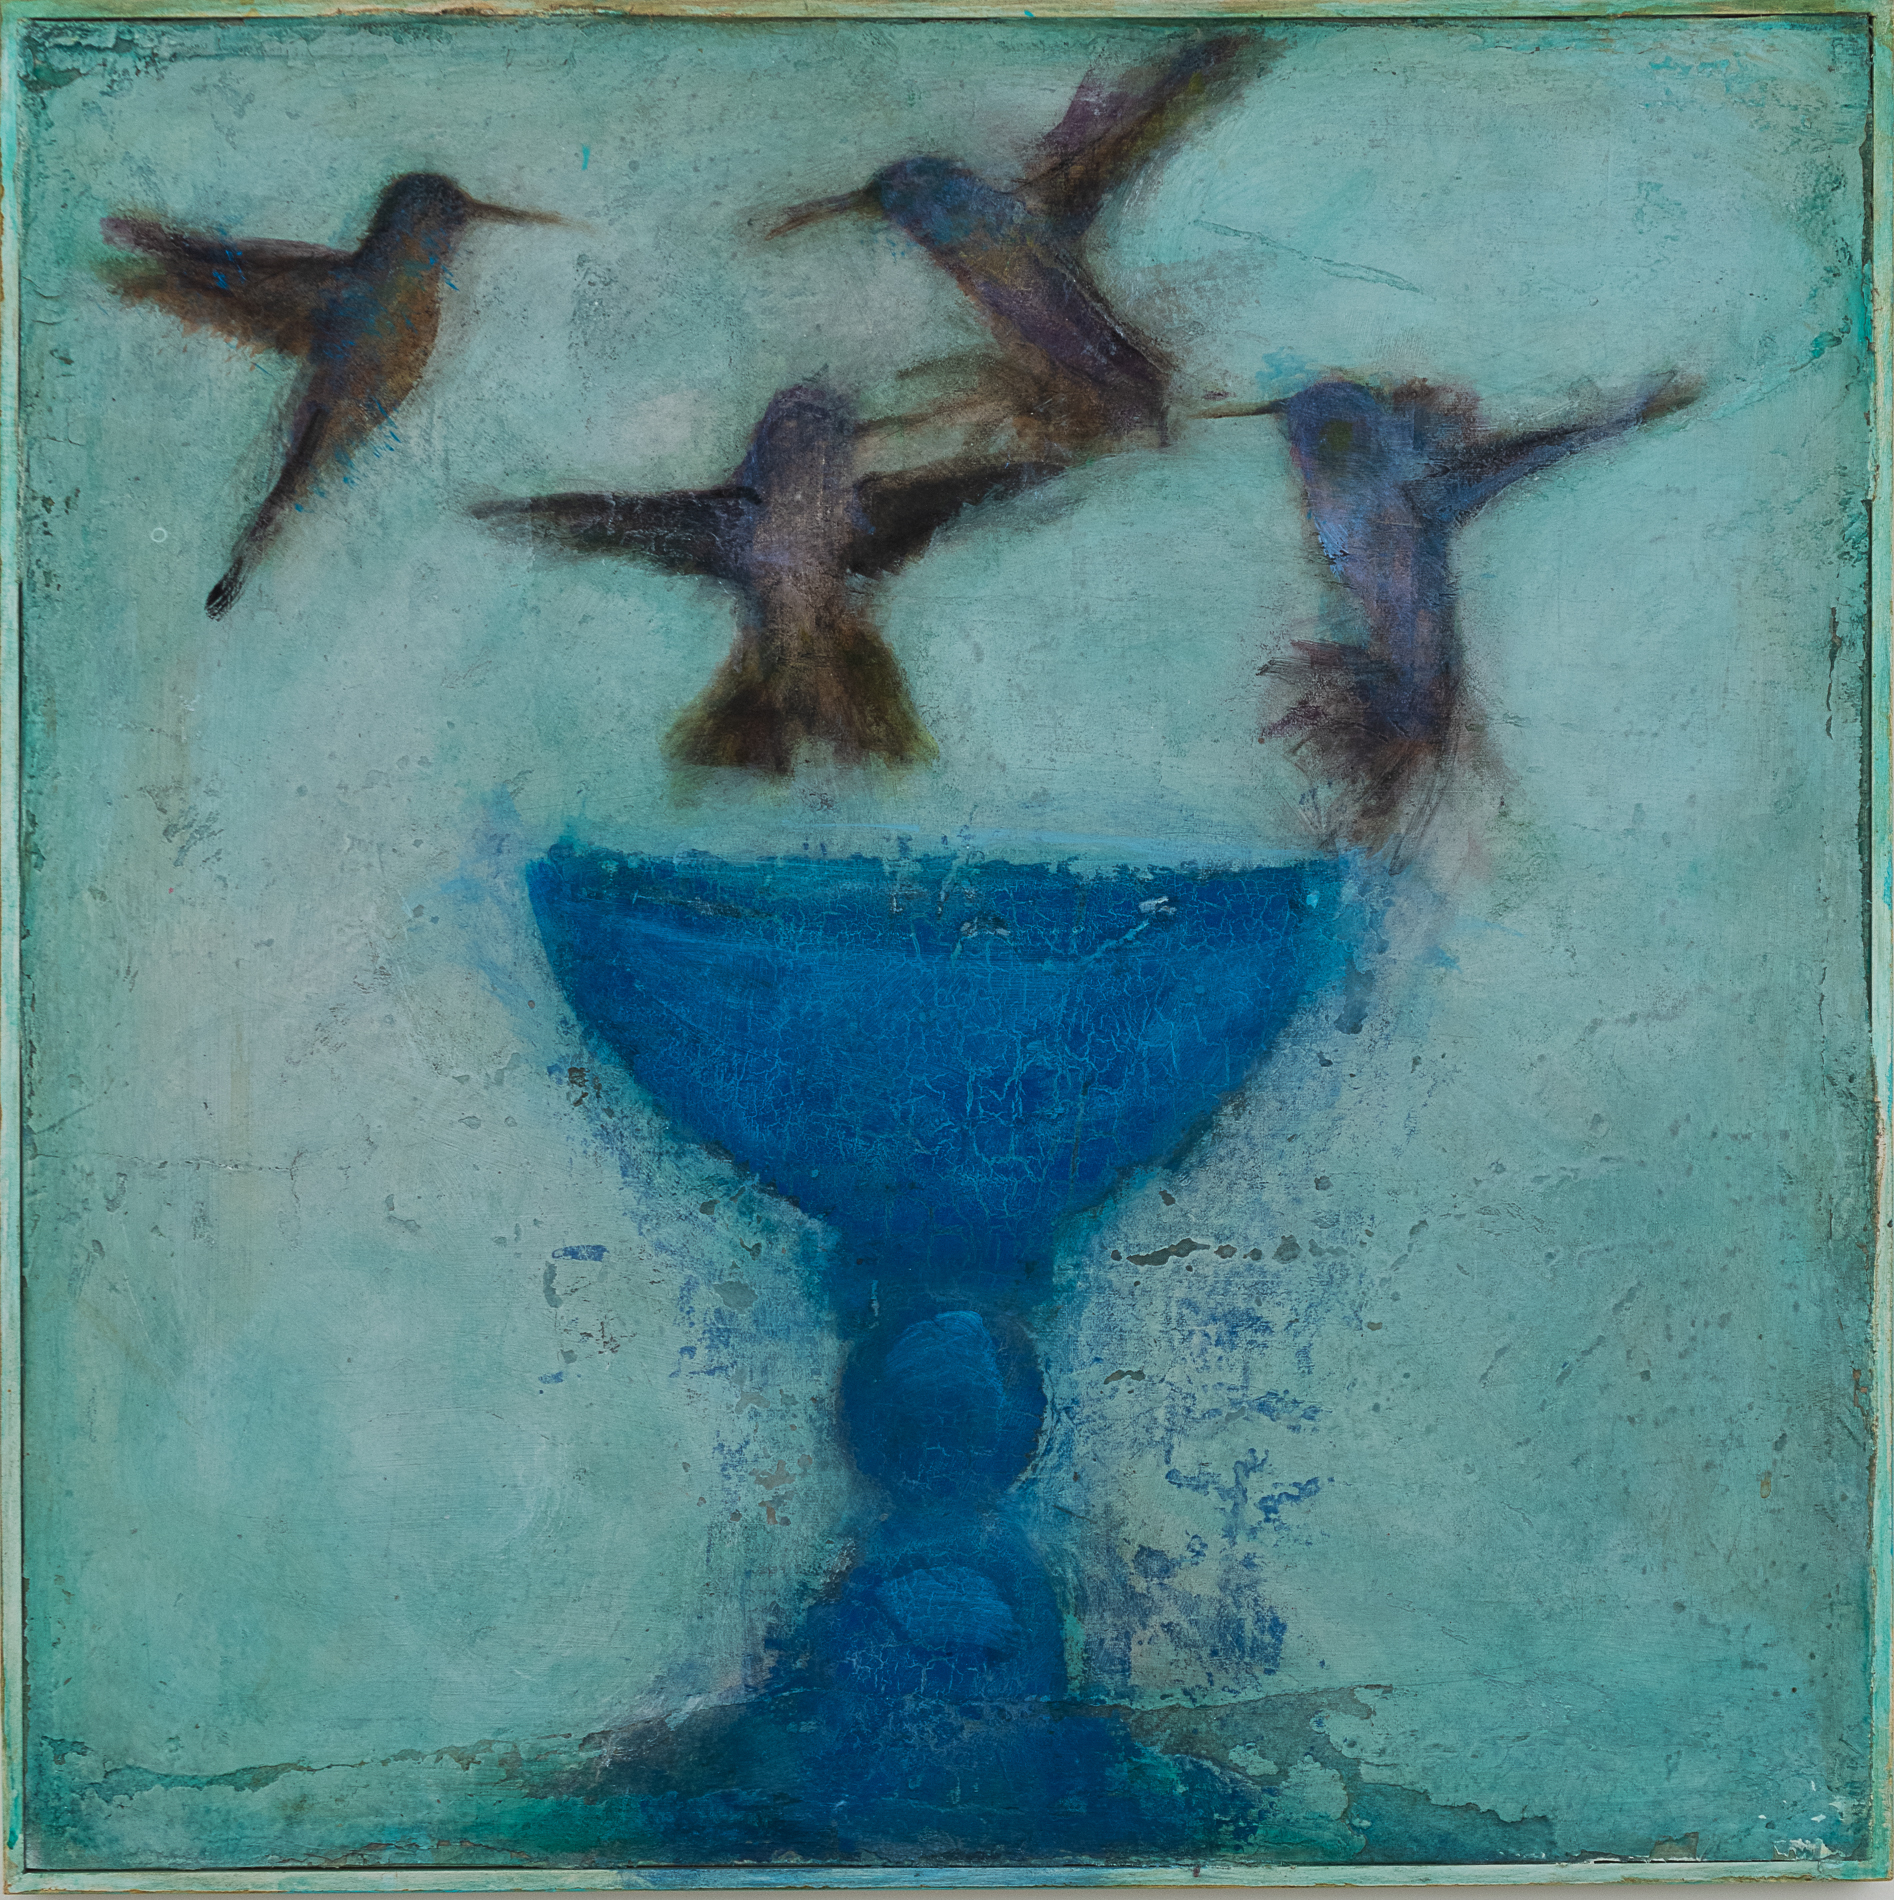 Birds and Vessel, X